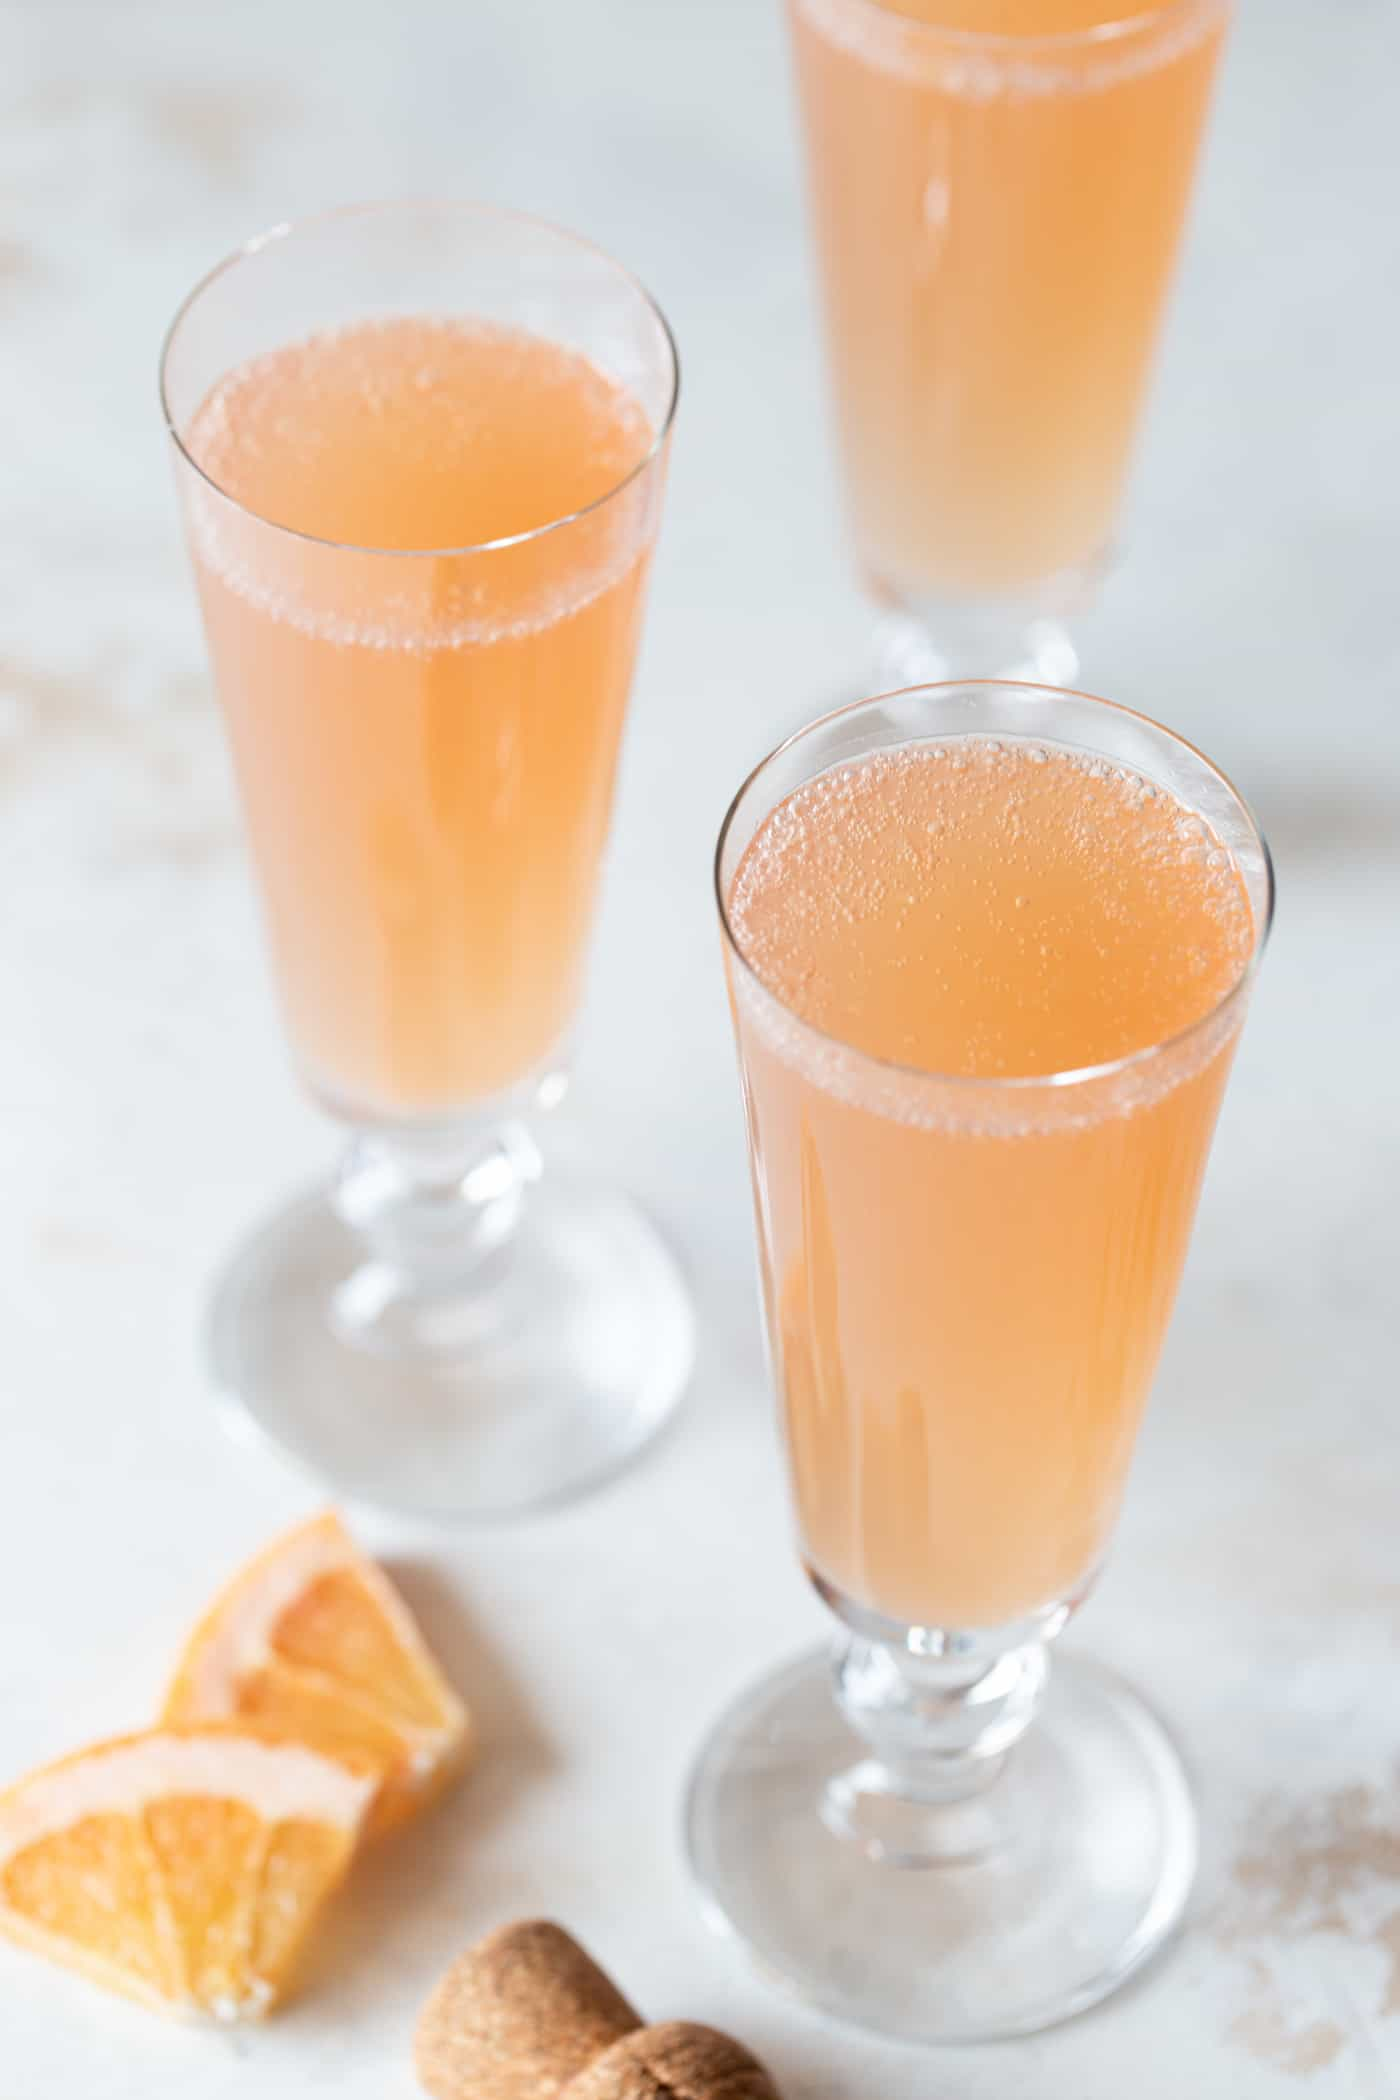 3/4 image of grapefruit mimosas in champagne flutes garnished with fresh grapefruit on a white background.